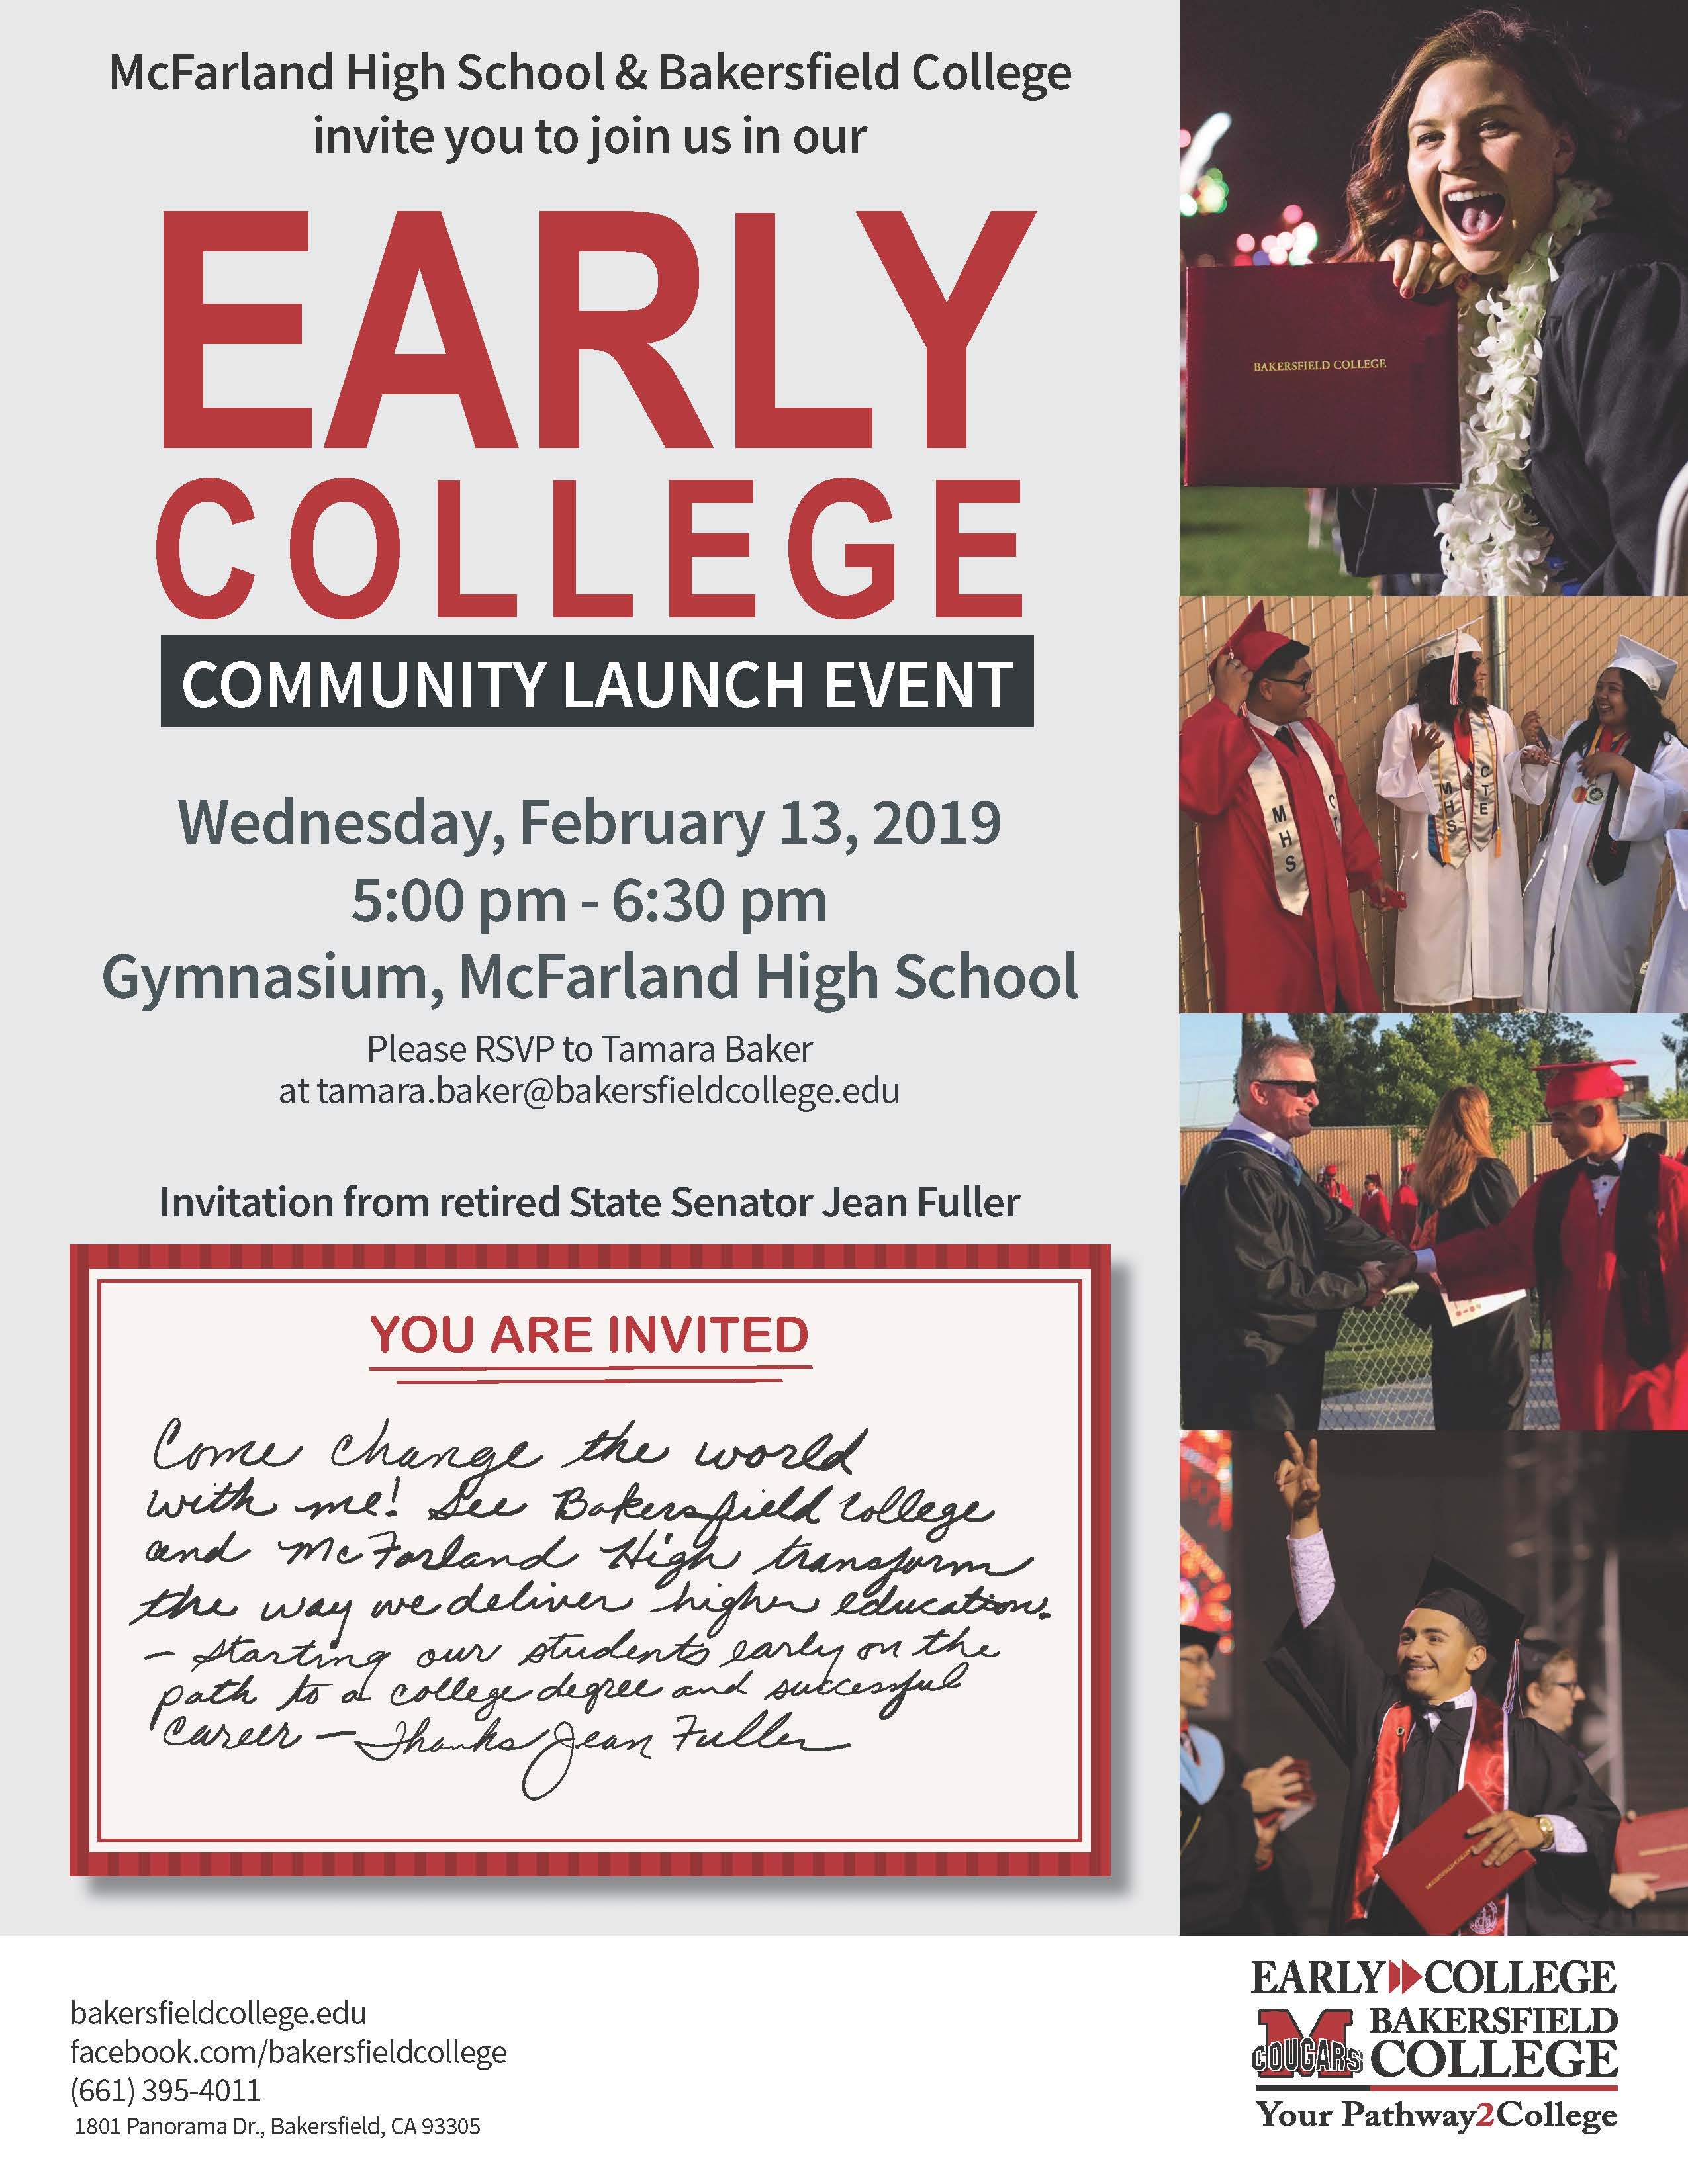 Early College Community Launch Event Invite